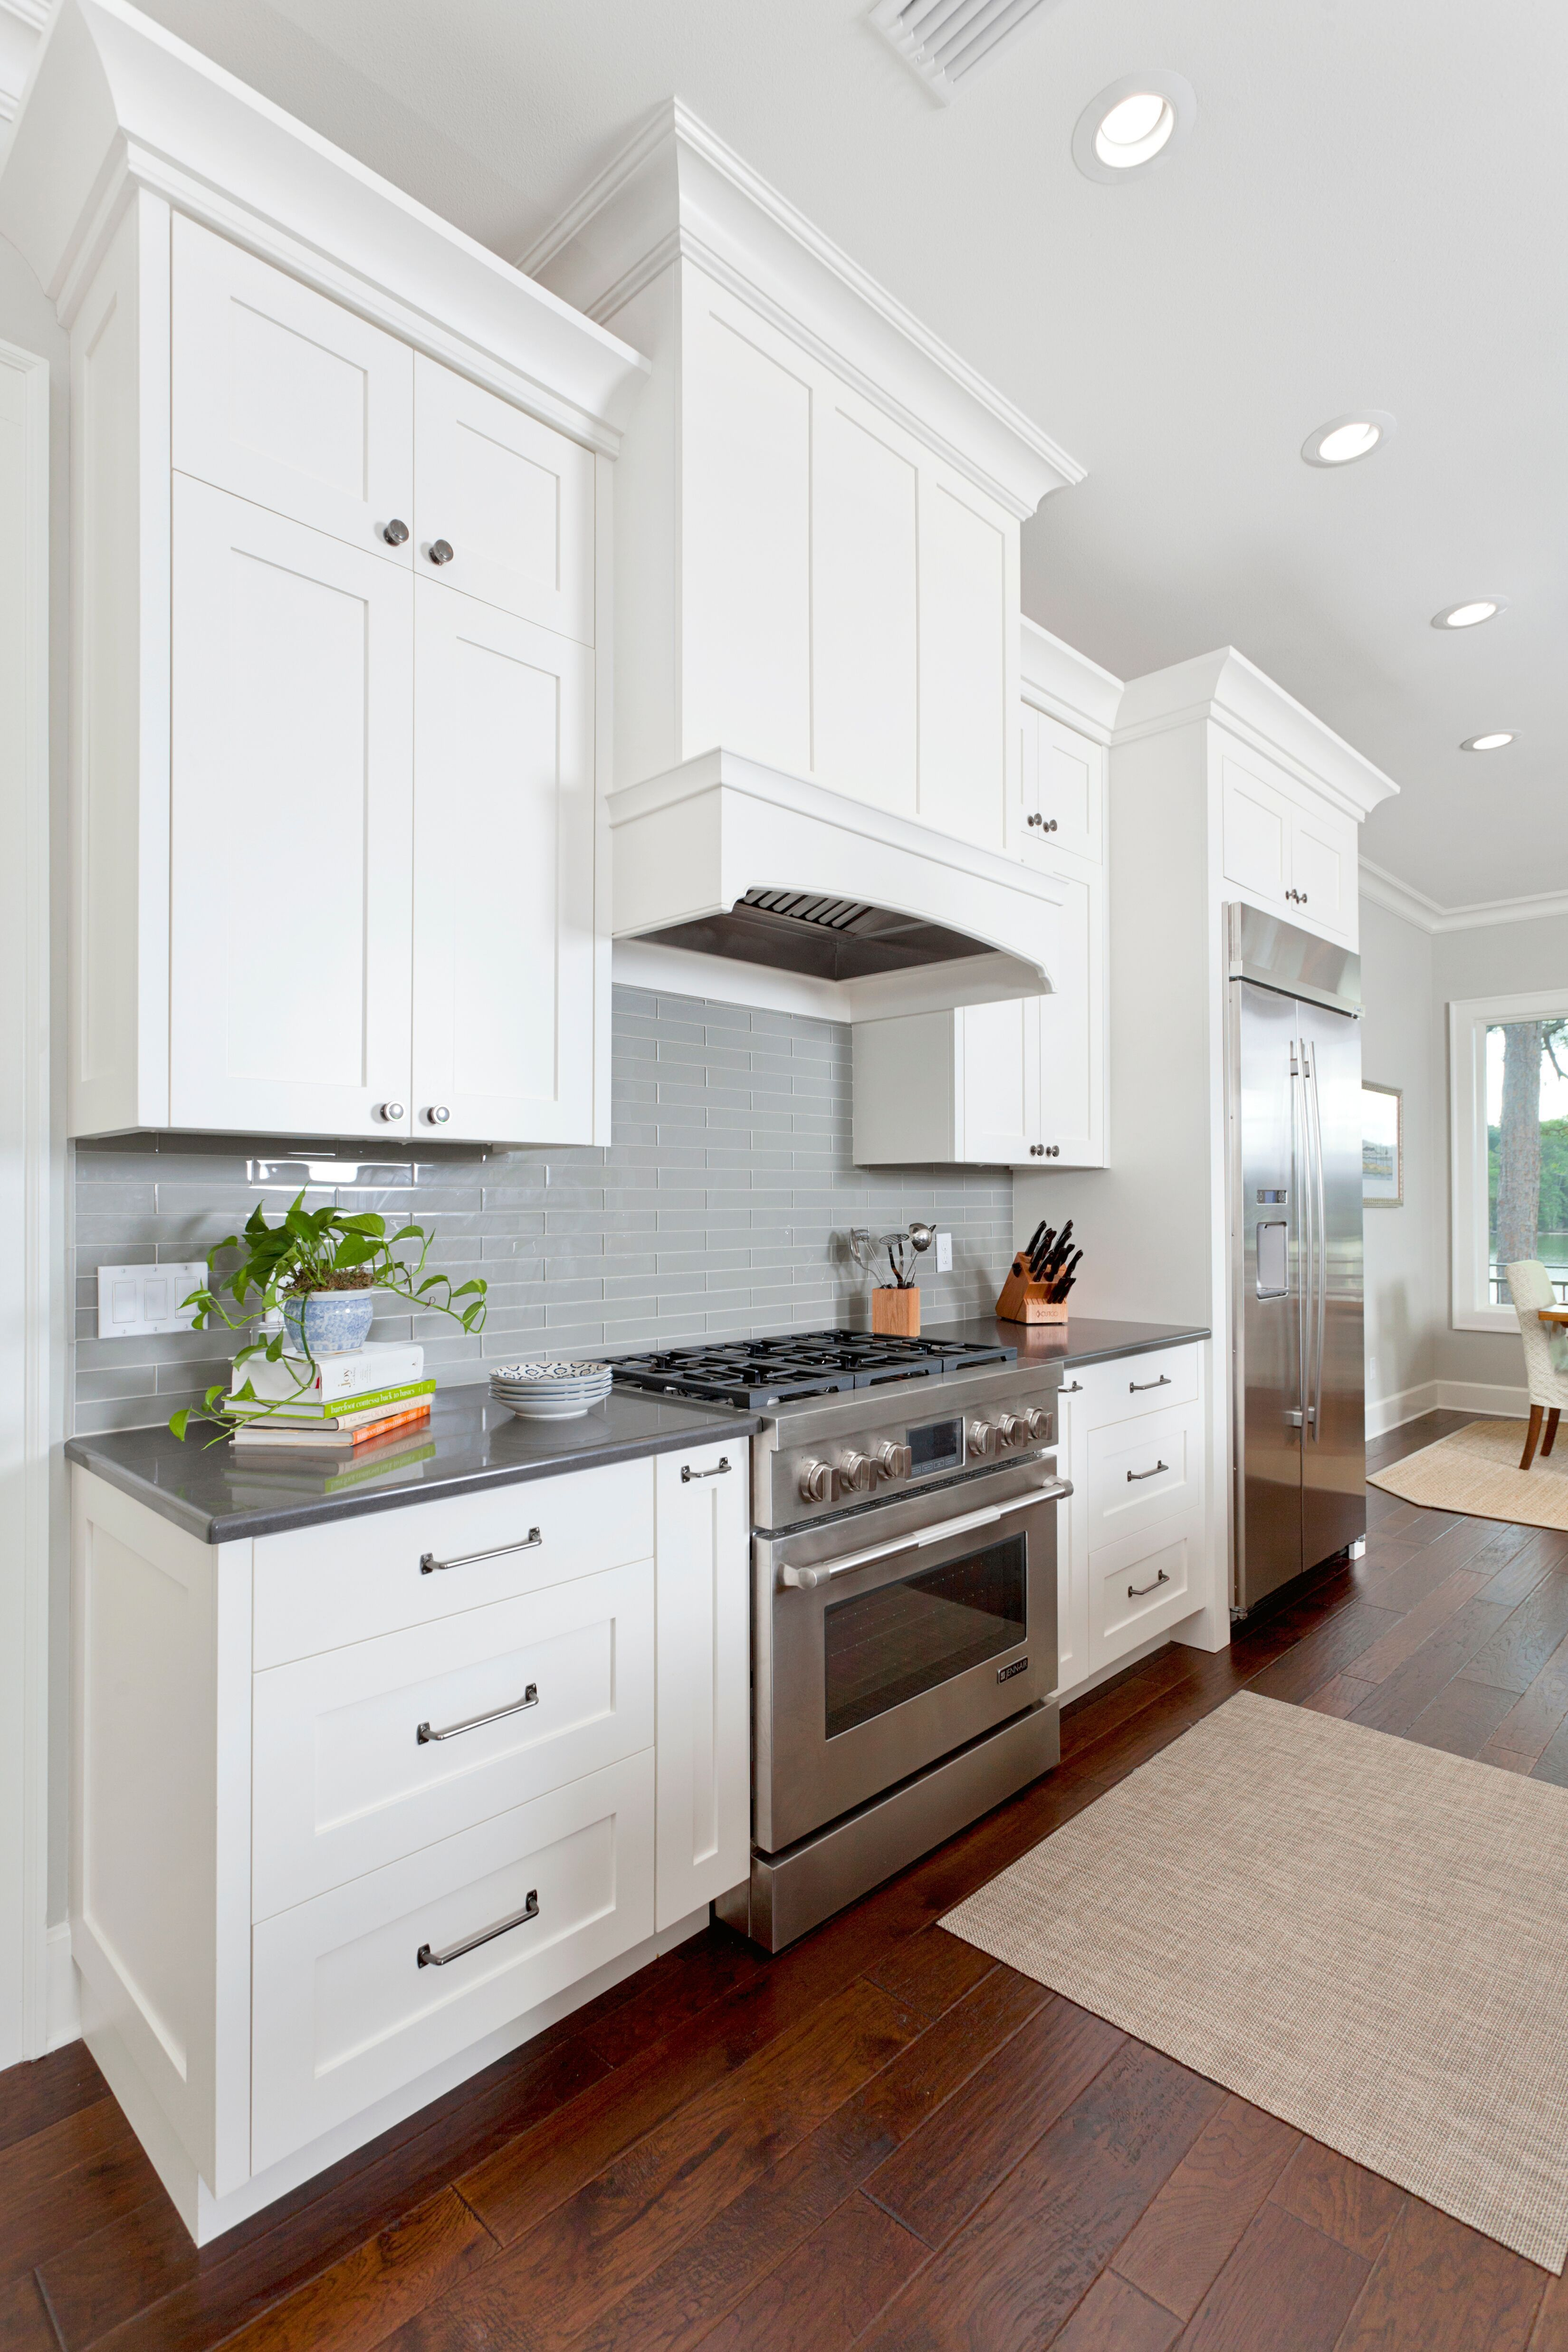 White Kitchen With Dark Grey Counter Top And Grey Backsplash White Kitchen With Gray Countertops Kitchen Inspiration Design Backsplash Kitchen White Cabinets